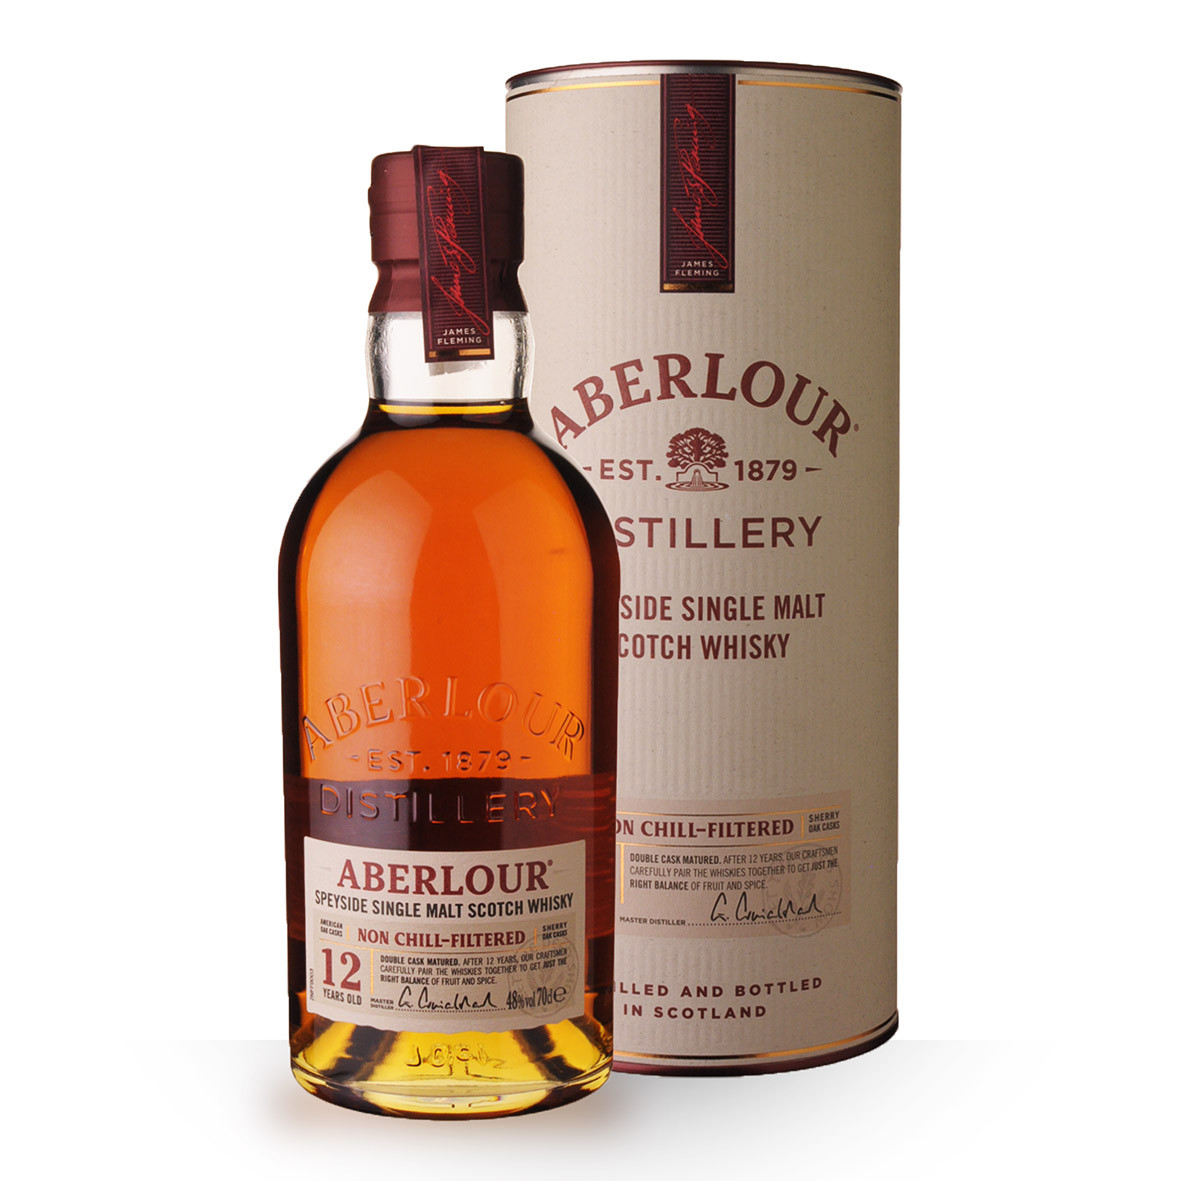 Whisky Aberlour 12 ans Non Chill-Filtered 70cl Coffret www.odyssee-vins.com